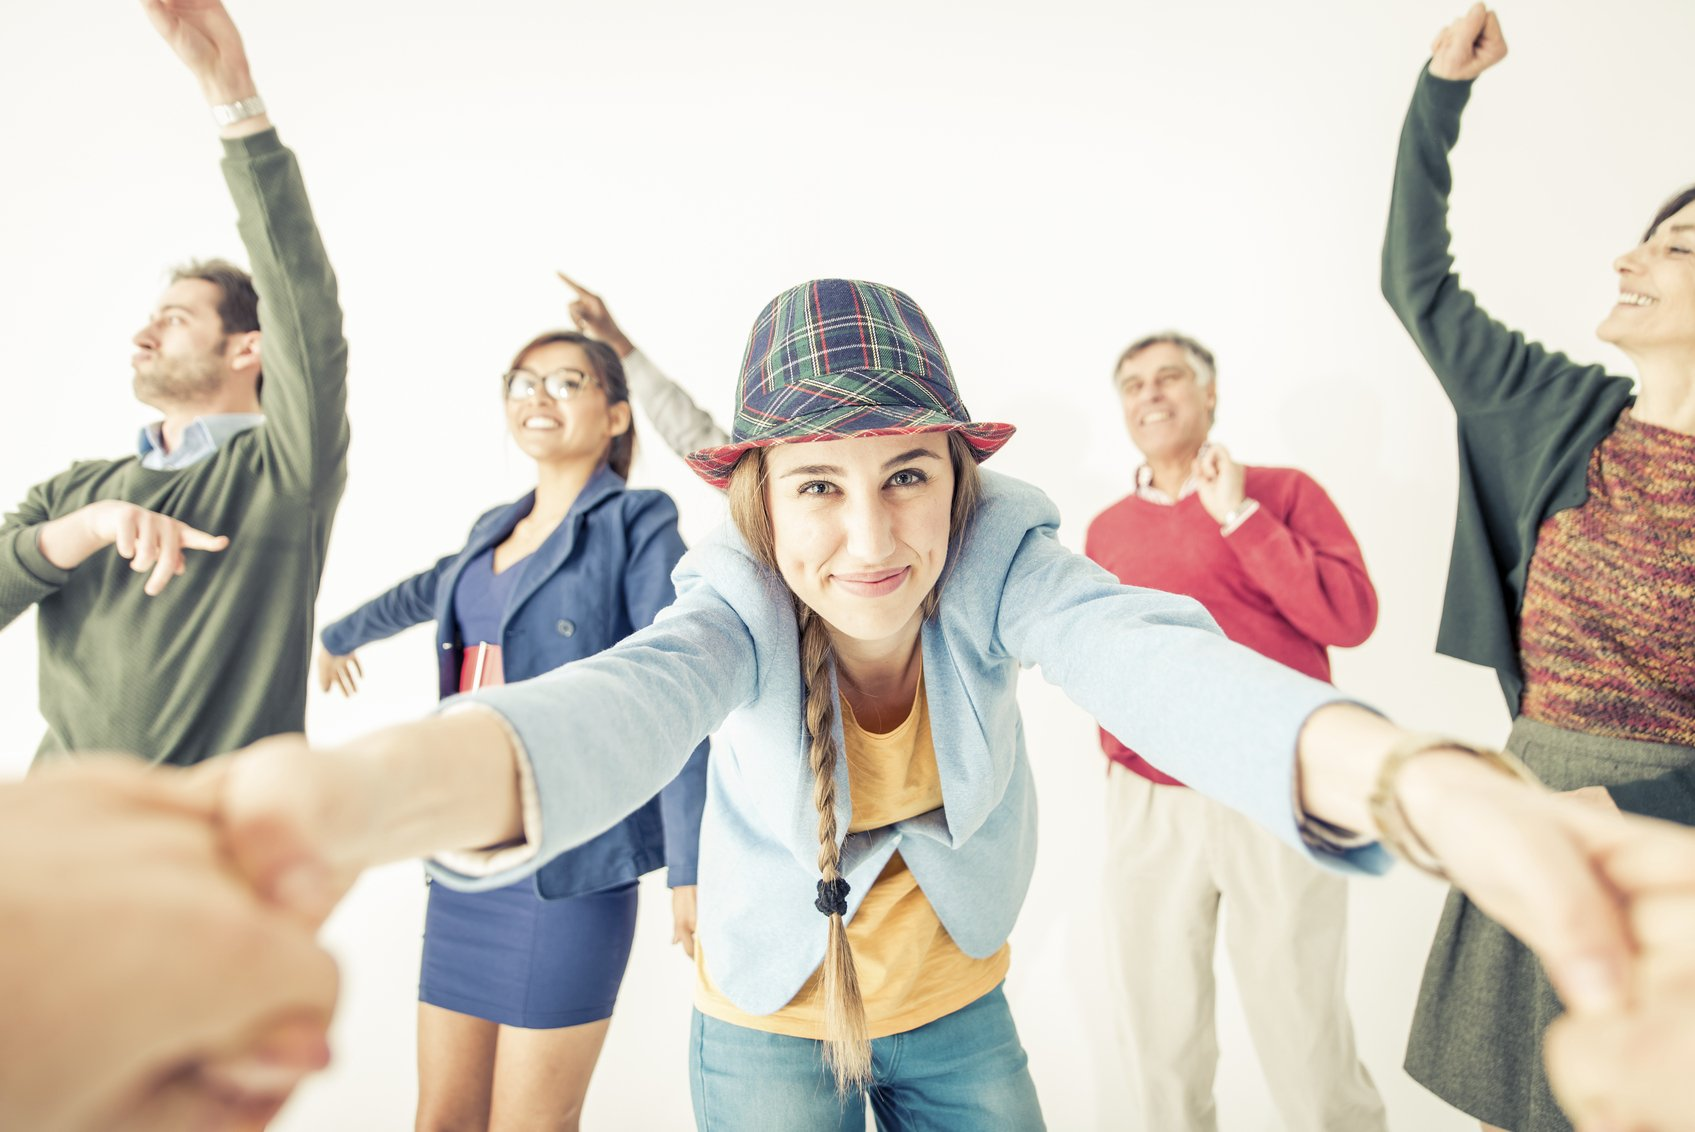 A social dance class can be a great place to make new adult friends that have similar interests as you.